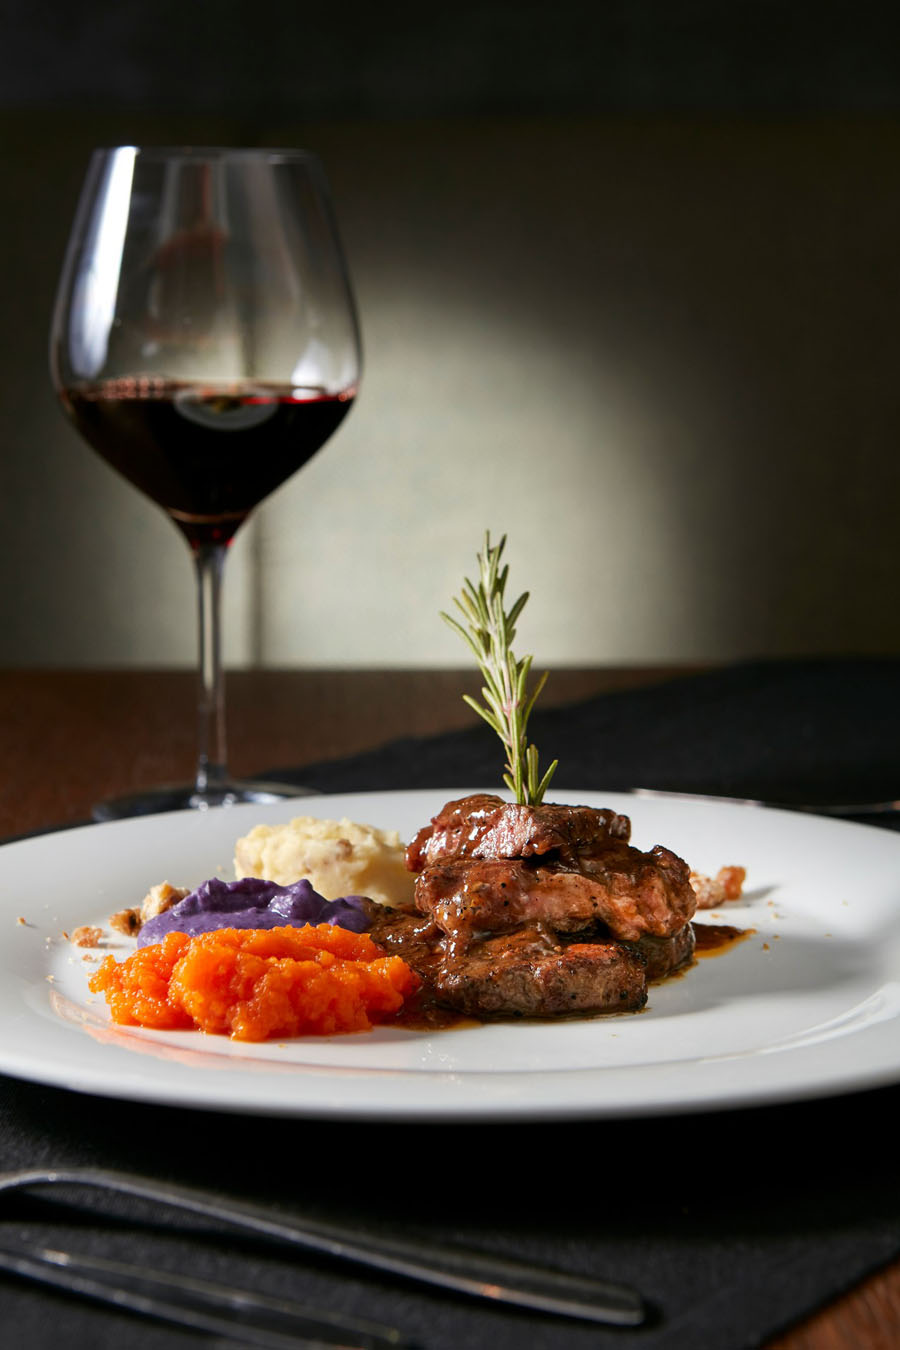 Boiled roast wild boar with vinsanto sauce